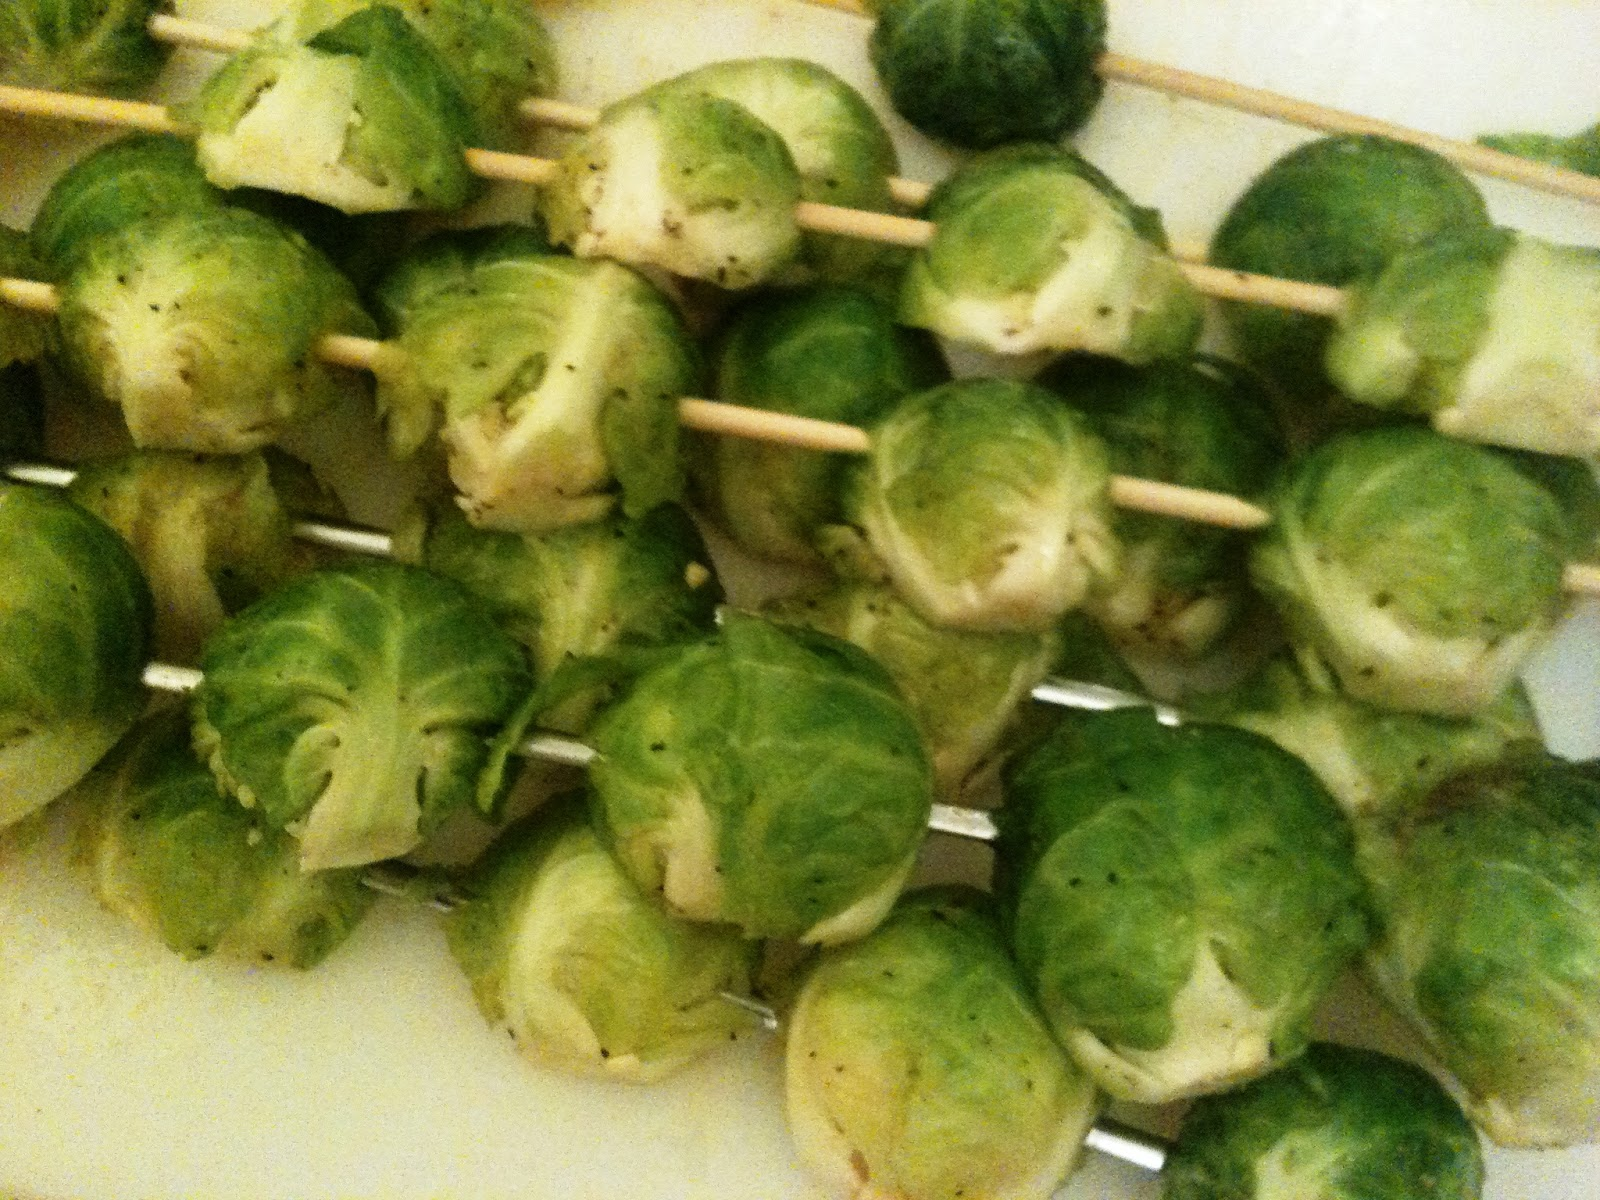 how to cut brussel sprouts for grilling